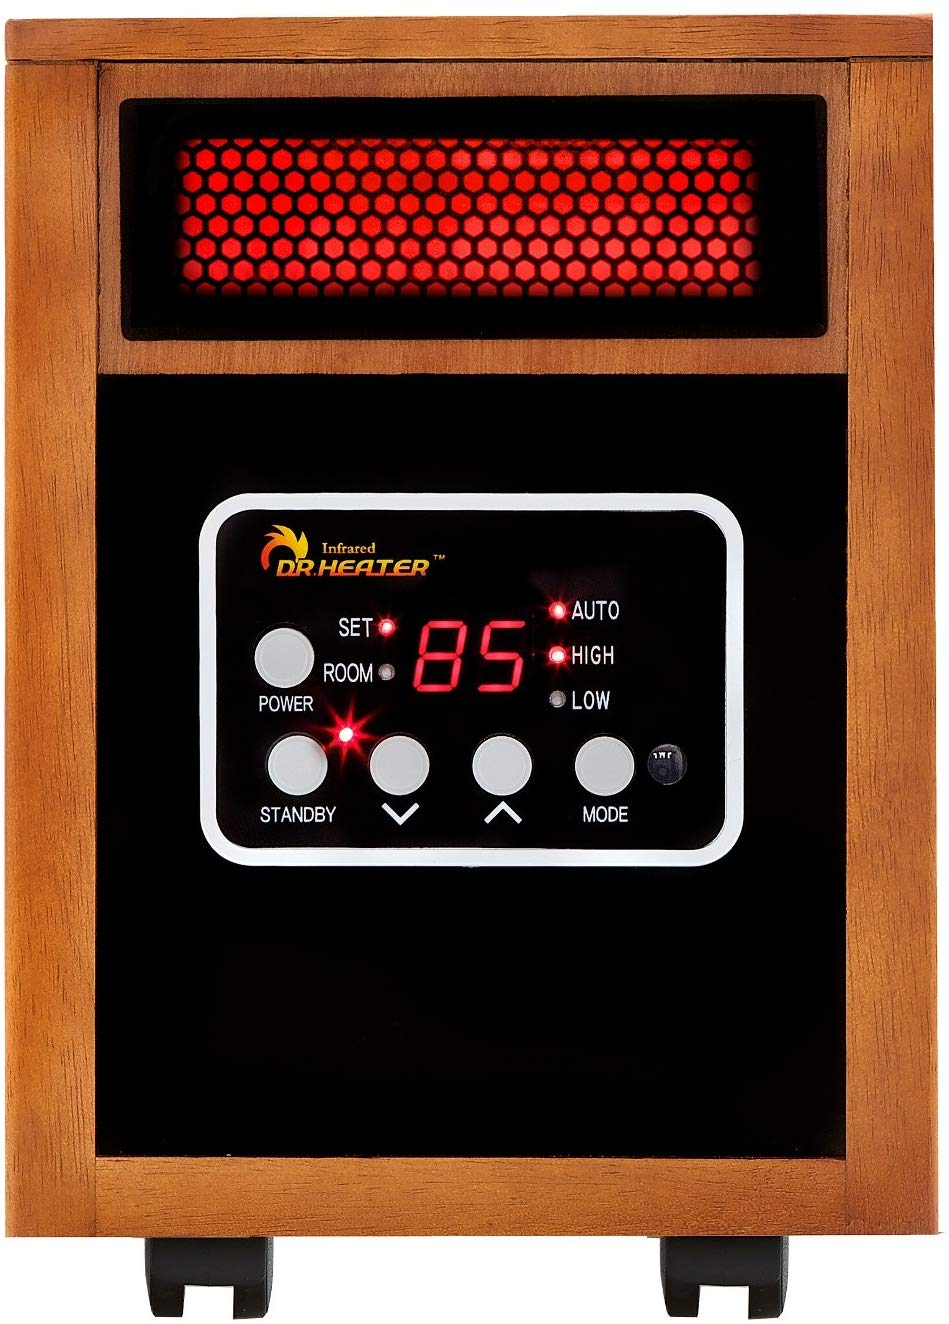 Best Heater for Winter: Dr Infrared Heater Portable